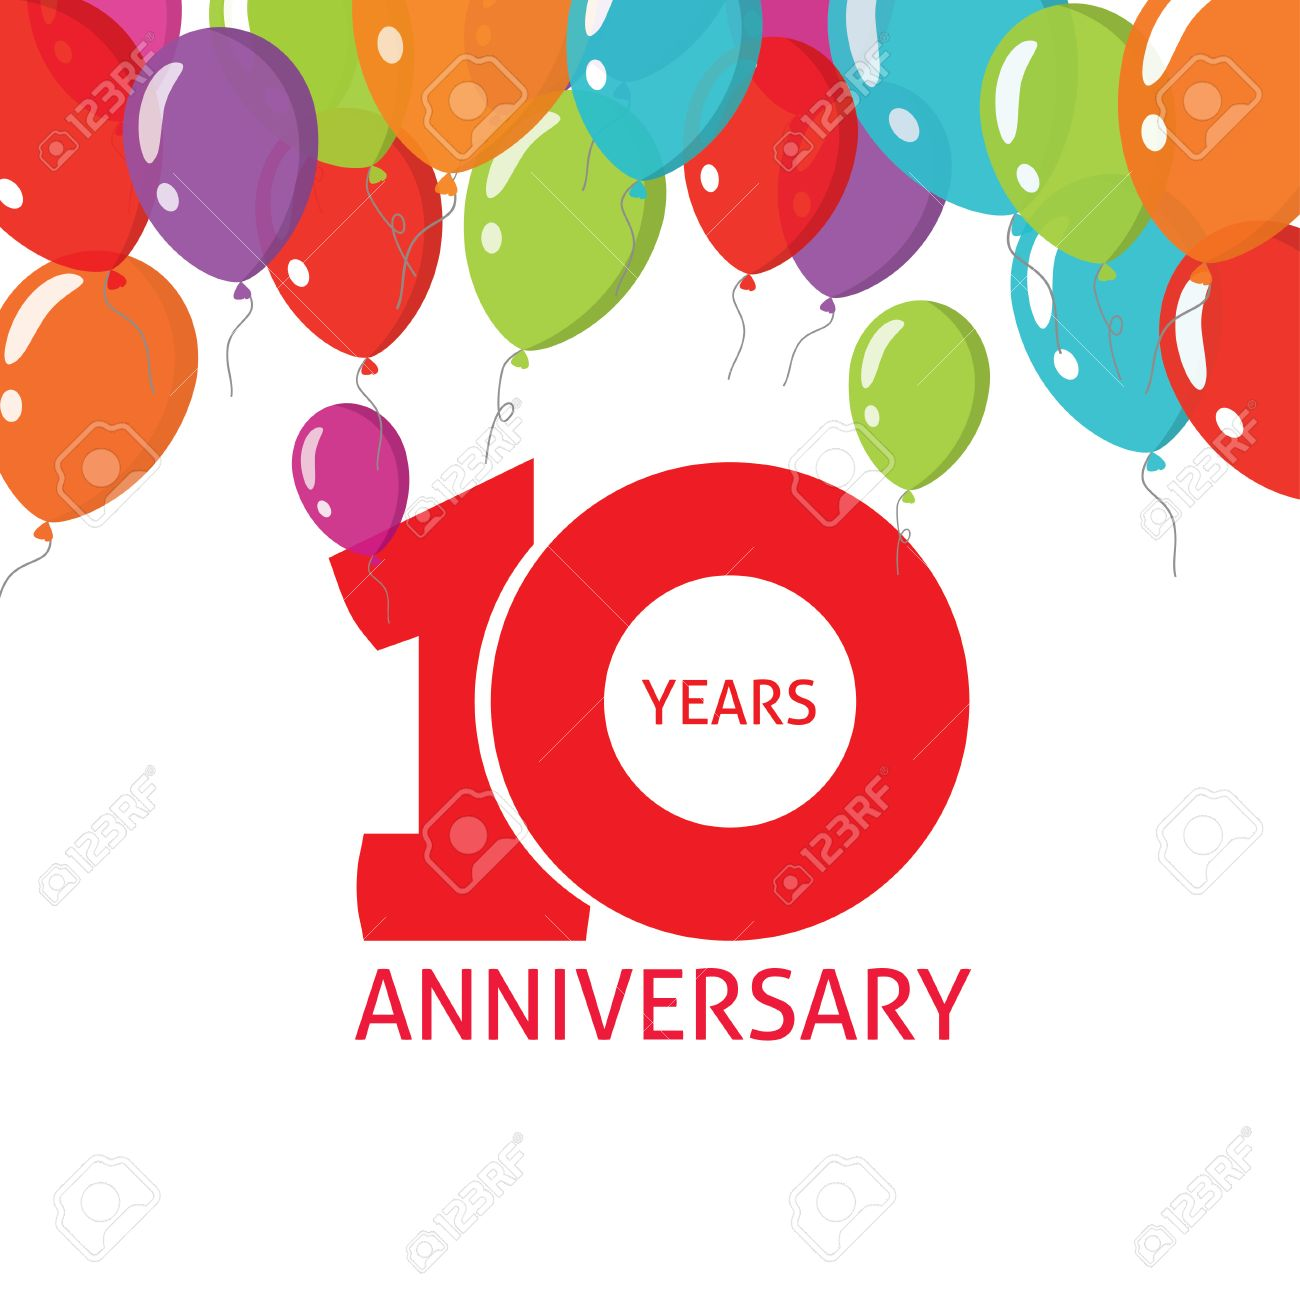 10th anniversary balloons poster number 1 one. 10 years anniversary icon sticker design. Ten years birthday party glossy balloon symbol. Tenth anniversary, badge, ribbon, banner, emblem, tag - 57404687